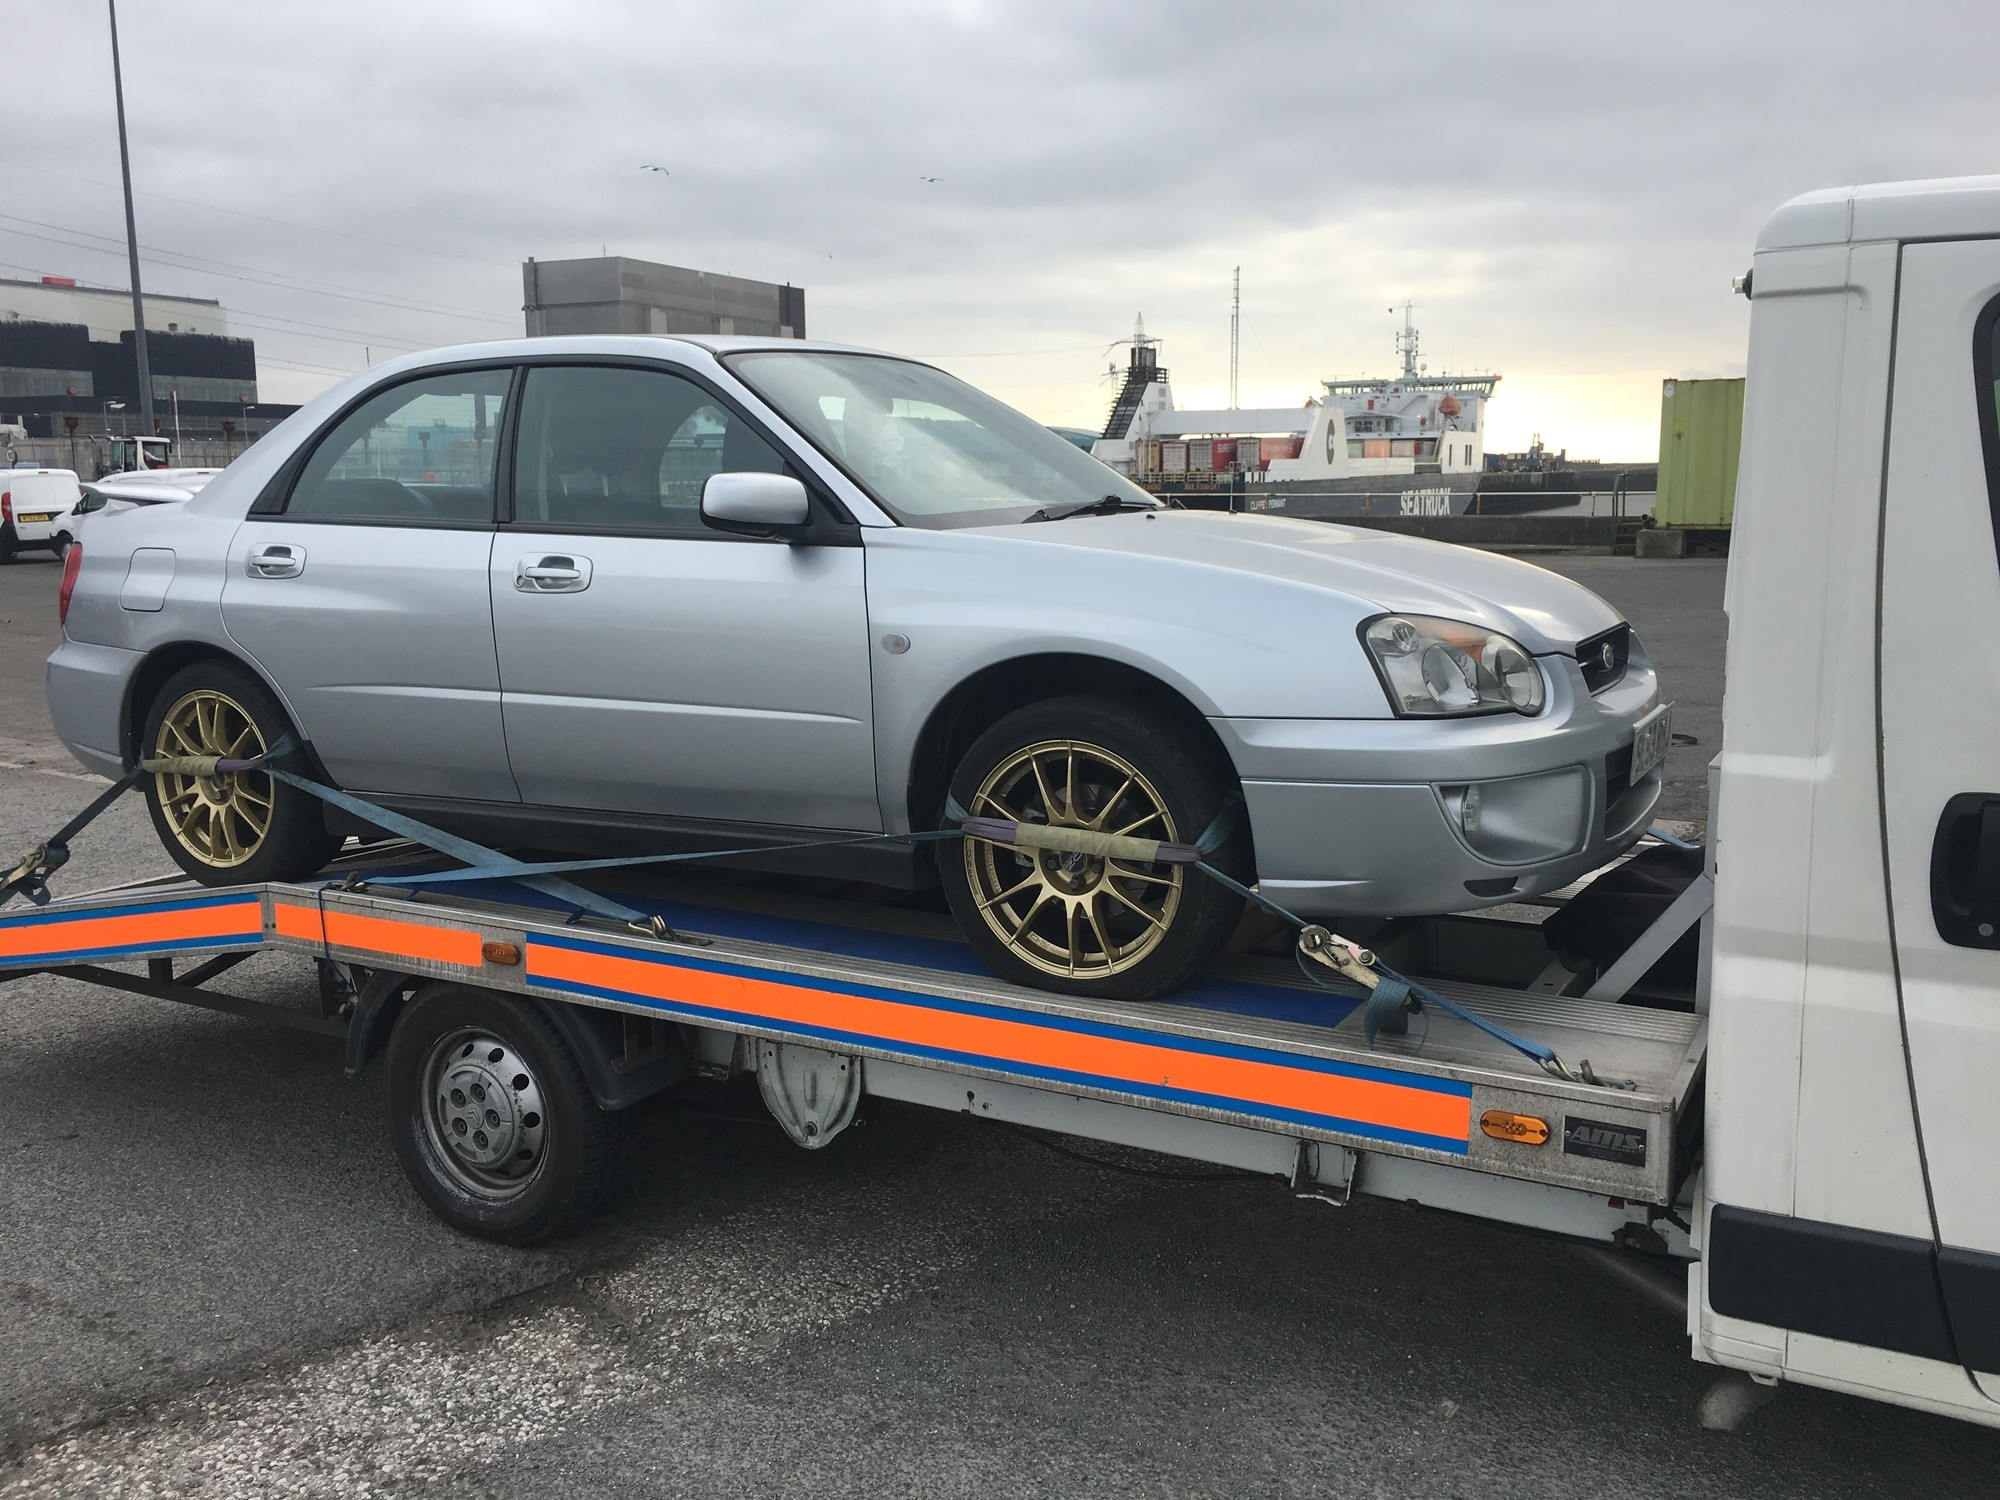 Silver Subaru Collected from Blackpool Lancashire